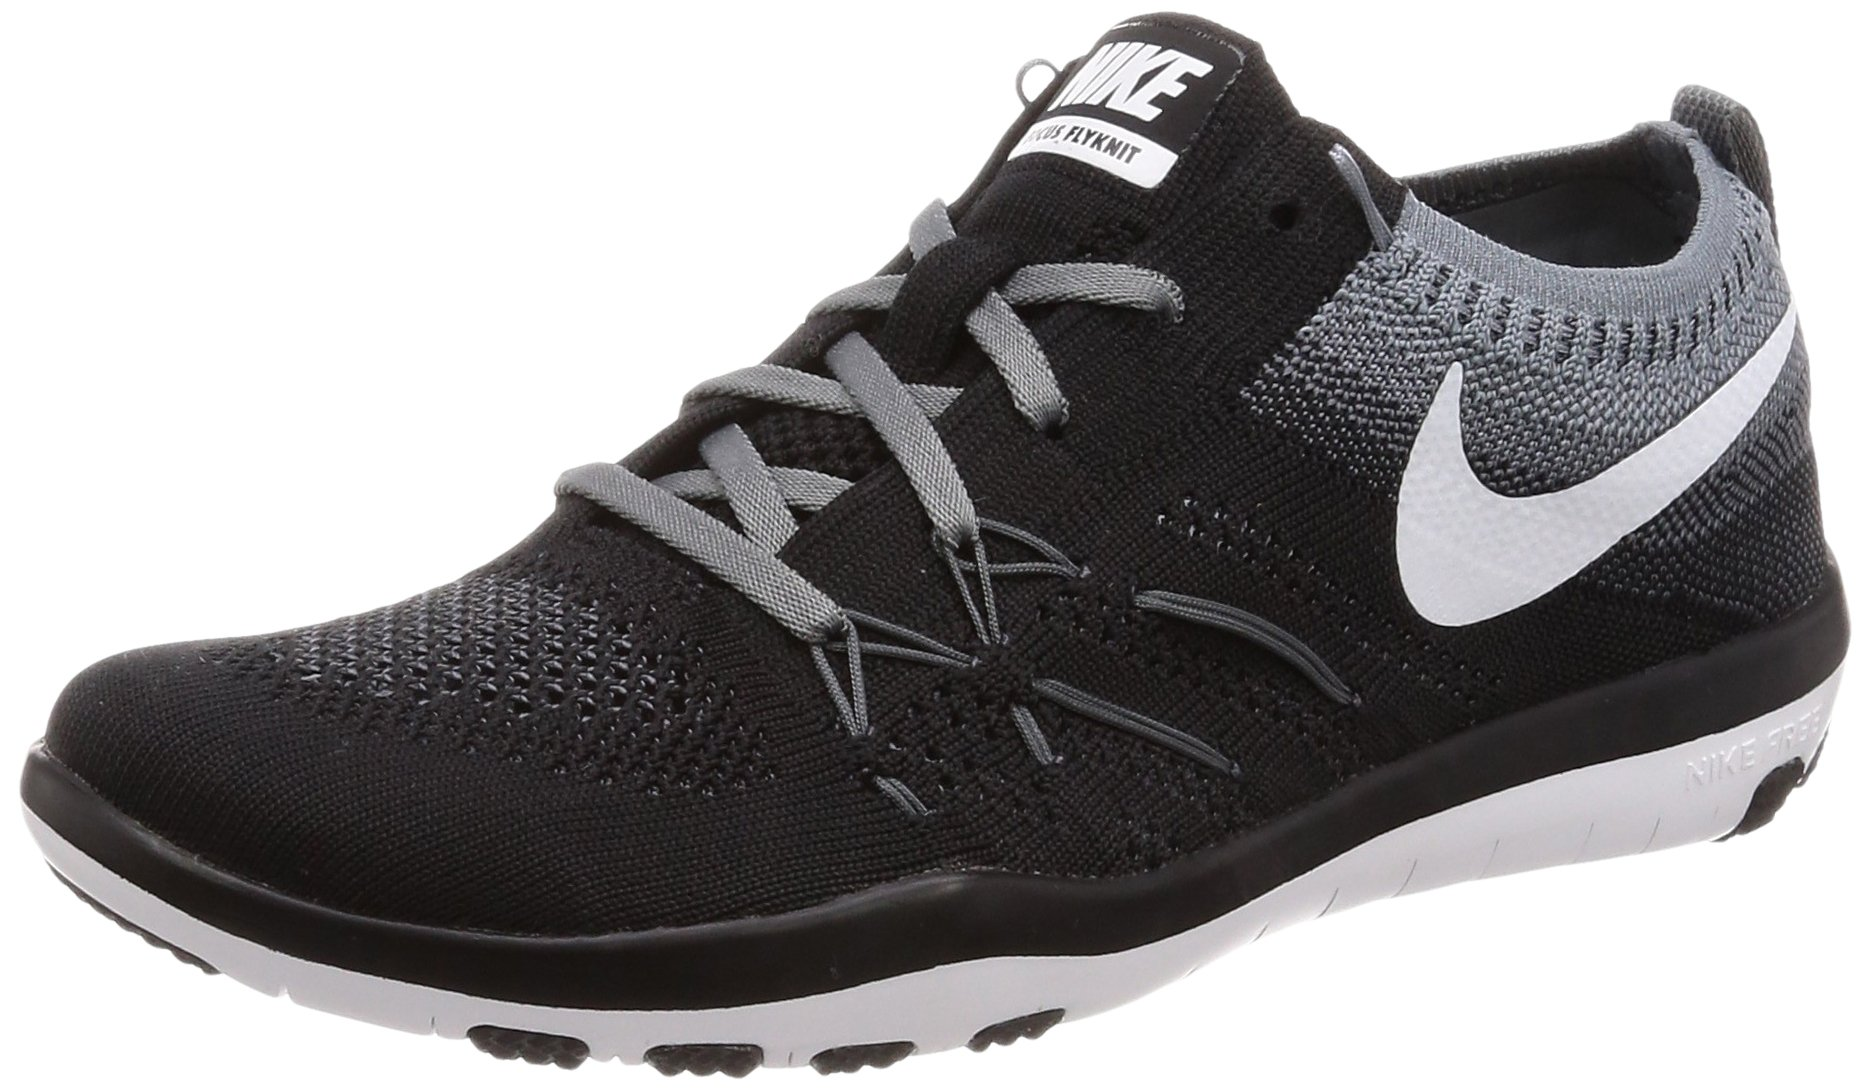 promo code cdff4 9d7b0 Galleon - Nike Women s Free TR Focus Flyknit Black White Grey Running Shoes  Size 7